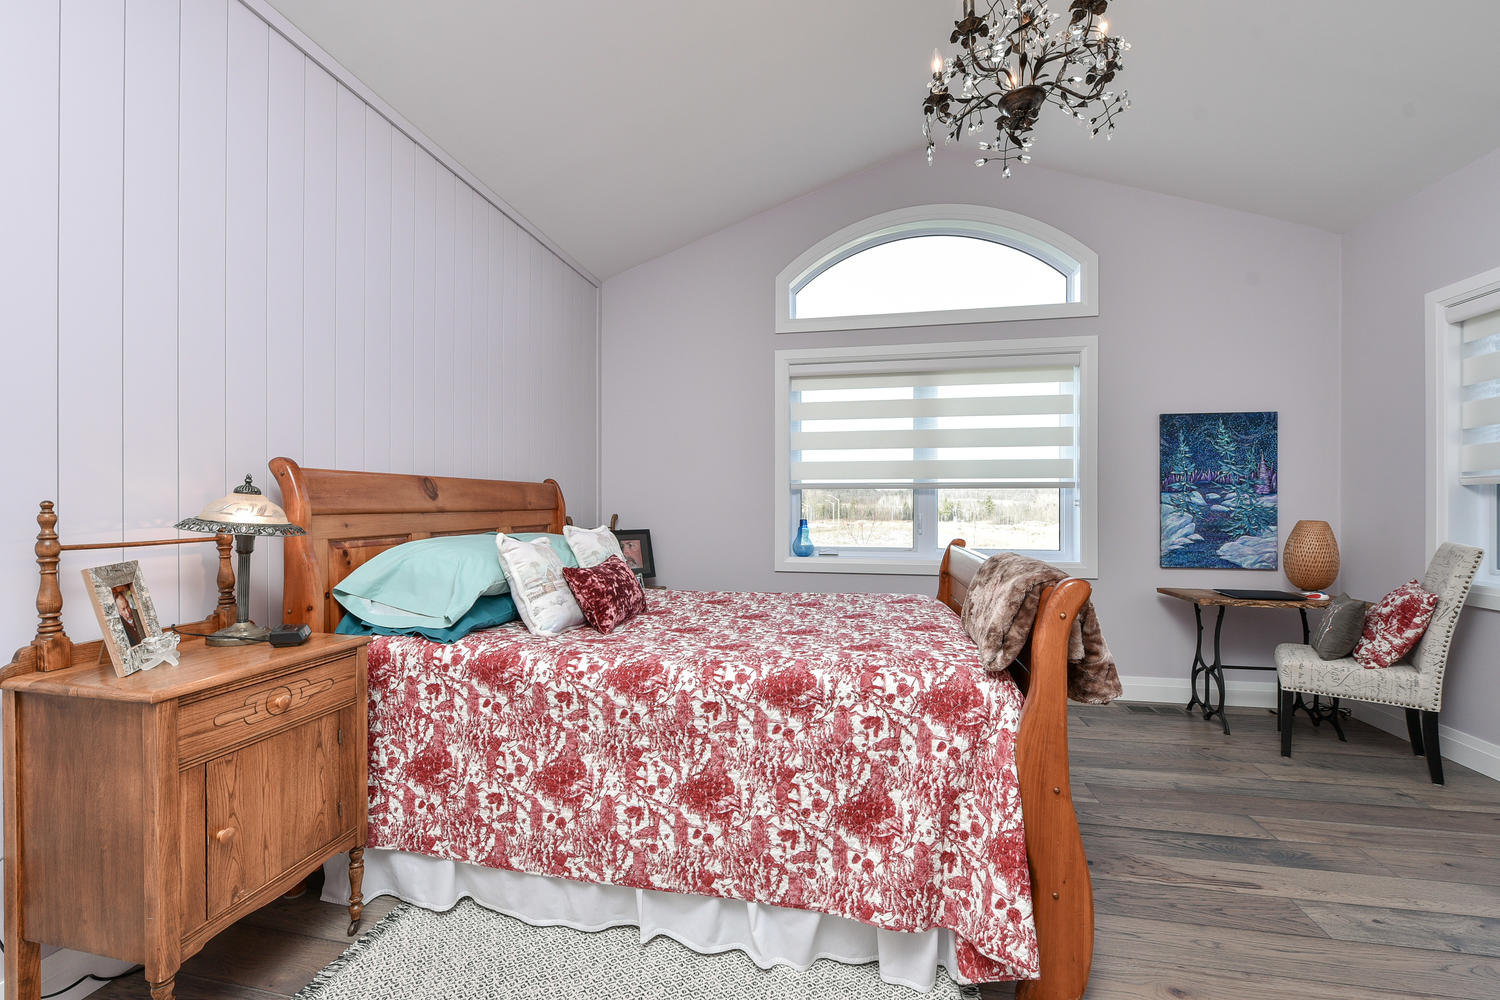 Bedroom - Traditional Family Home Project In Renfrew by Kelly Homes Inc.